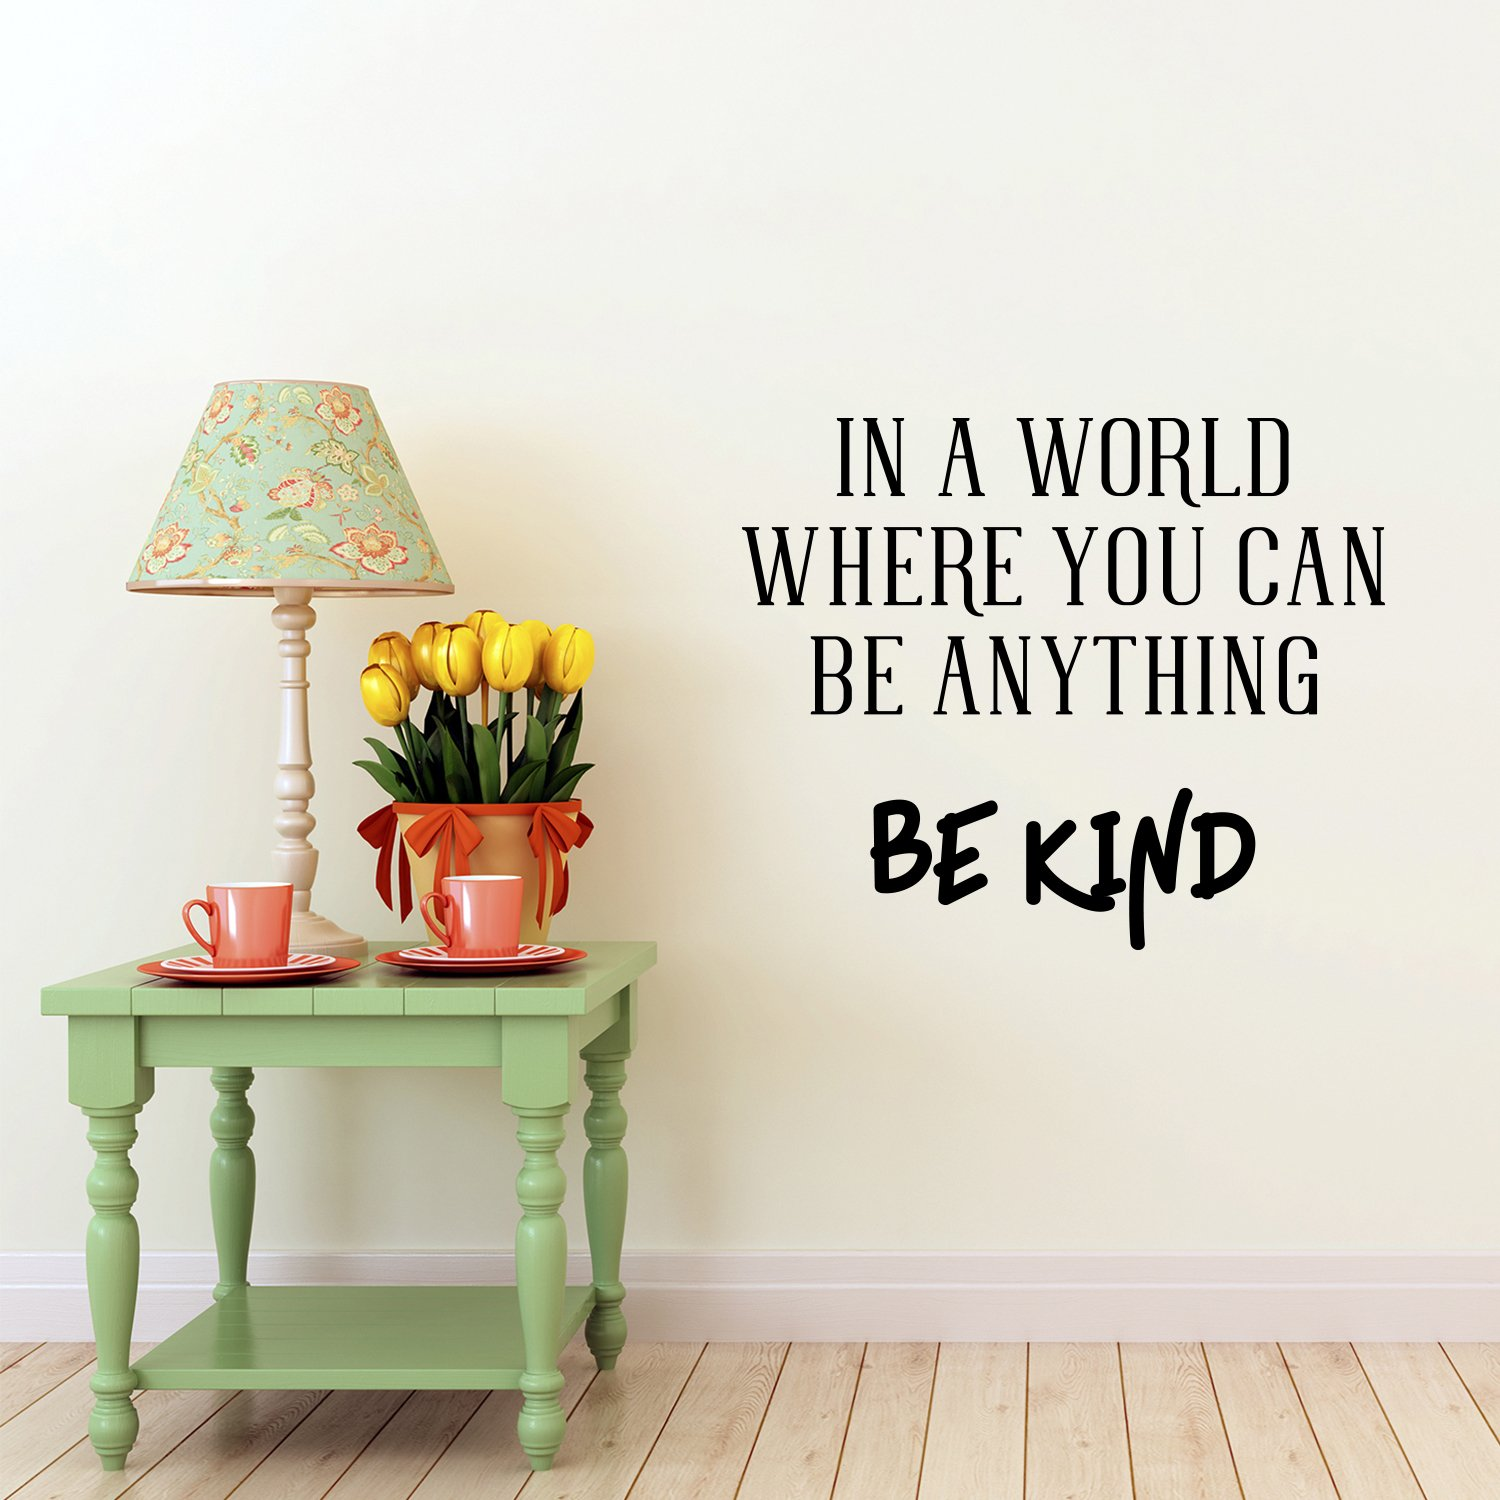 Vinyl Wall Art Decal - In A World Where You Can Be Anything Be Kind - 19'' x 23'' - Inspirational Decoration For Home Office Use - Motivational Indoor Outdoor Wall Waterproof Decor Stencil Adhesive